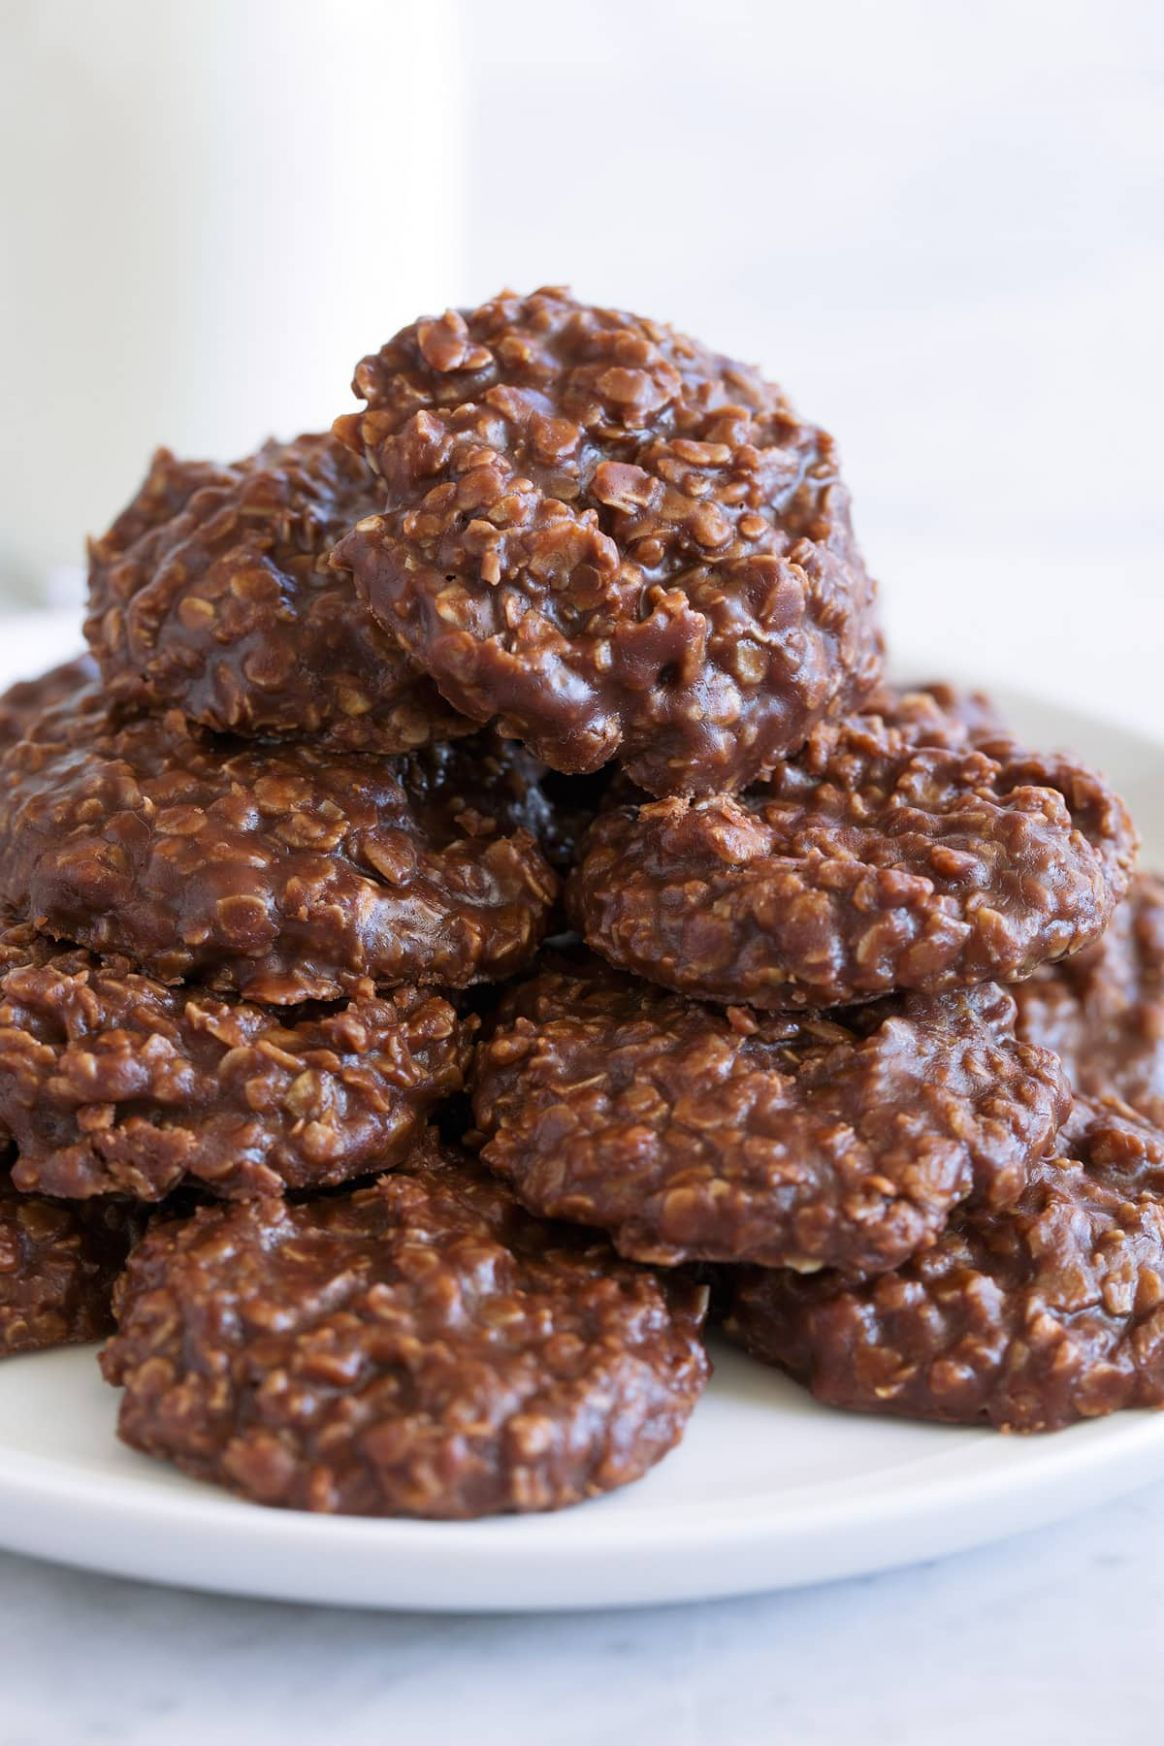 No Bake Cookies Perfect Every Time! - Cooking Classy - Recipe Chocolate No Bake Oatmeal Cookies